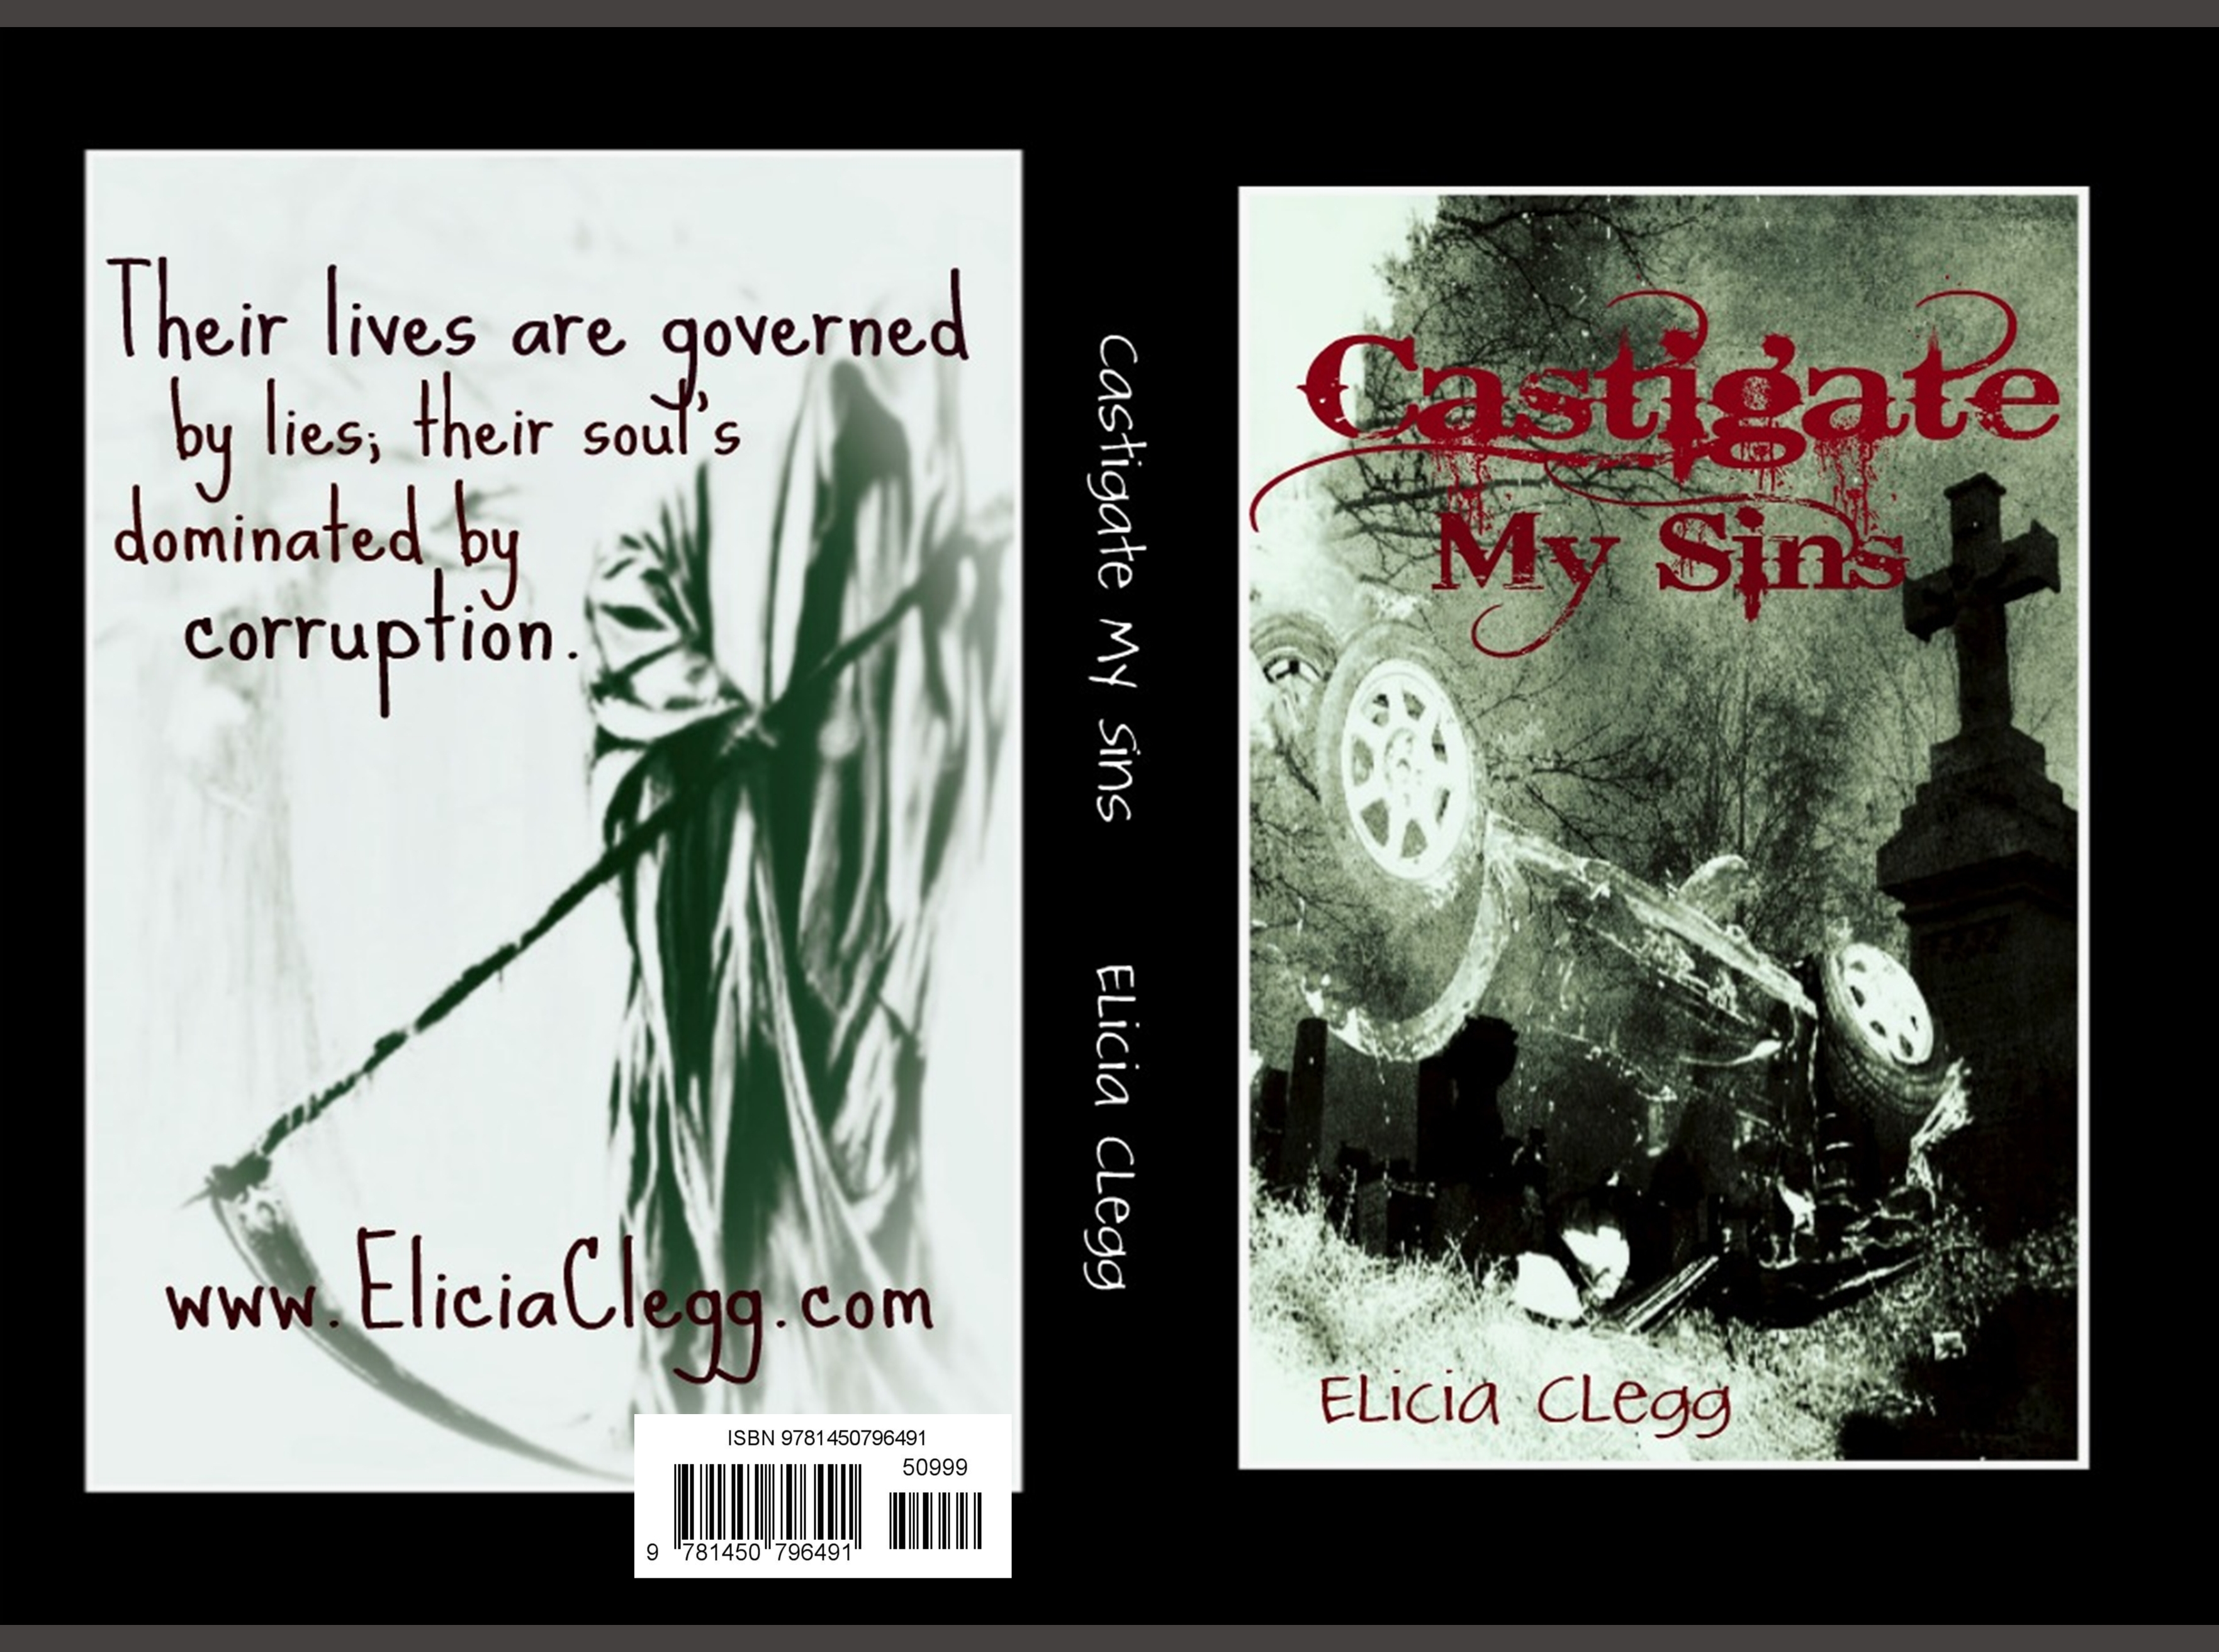 Castigate My Sins cover image